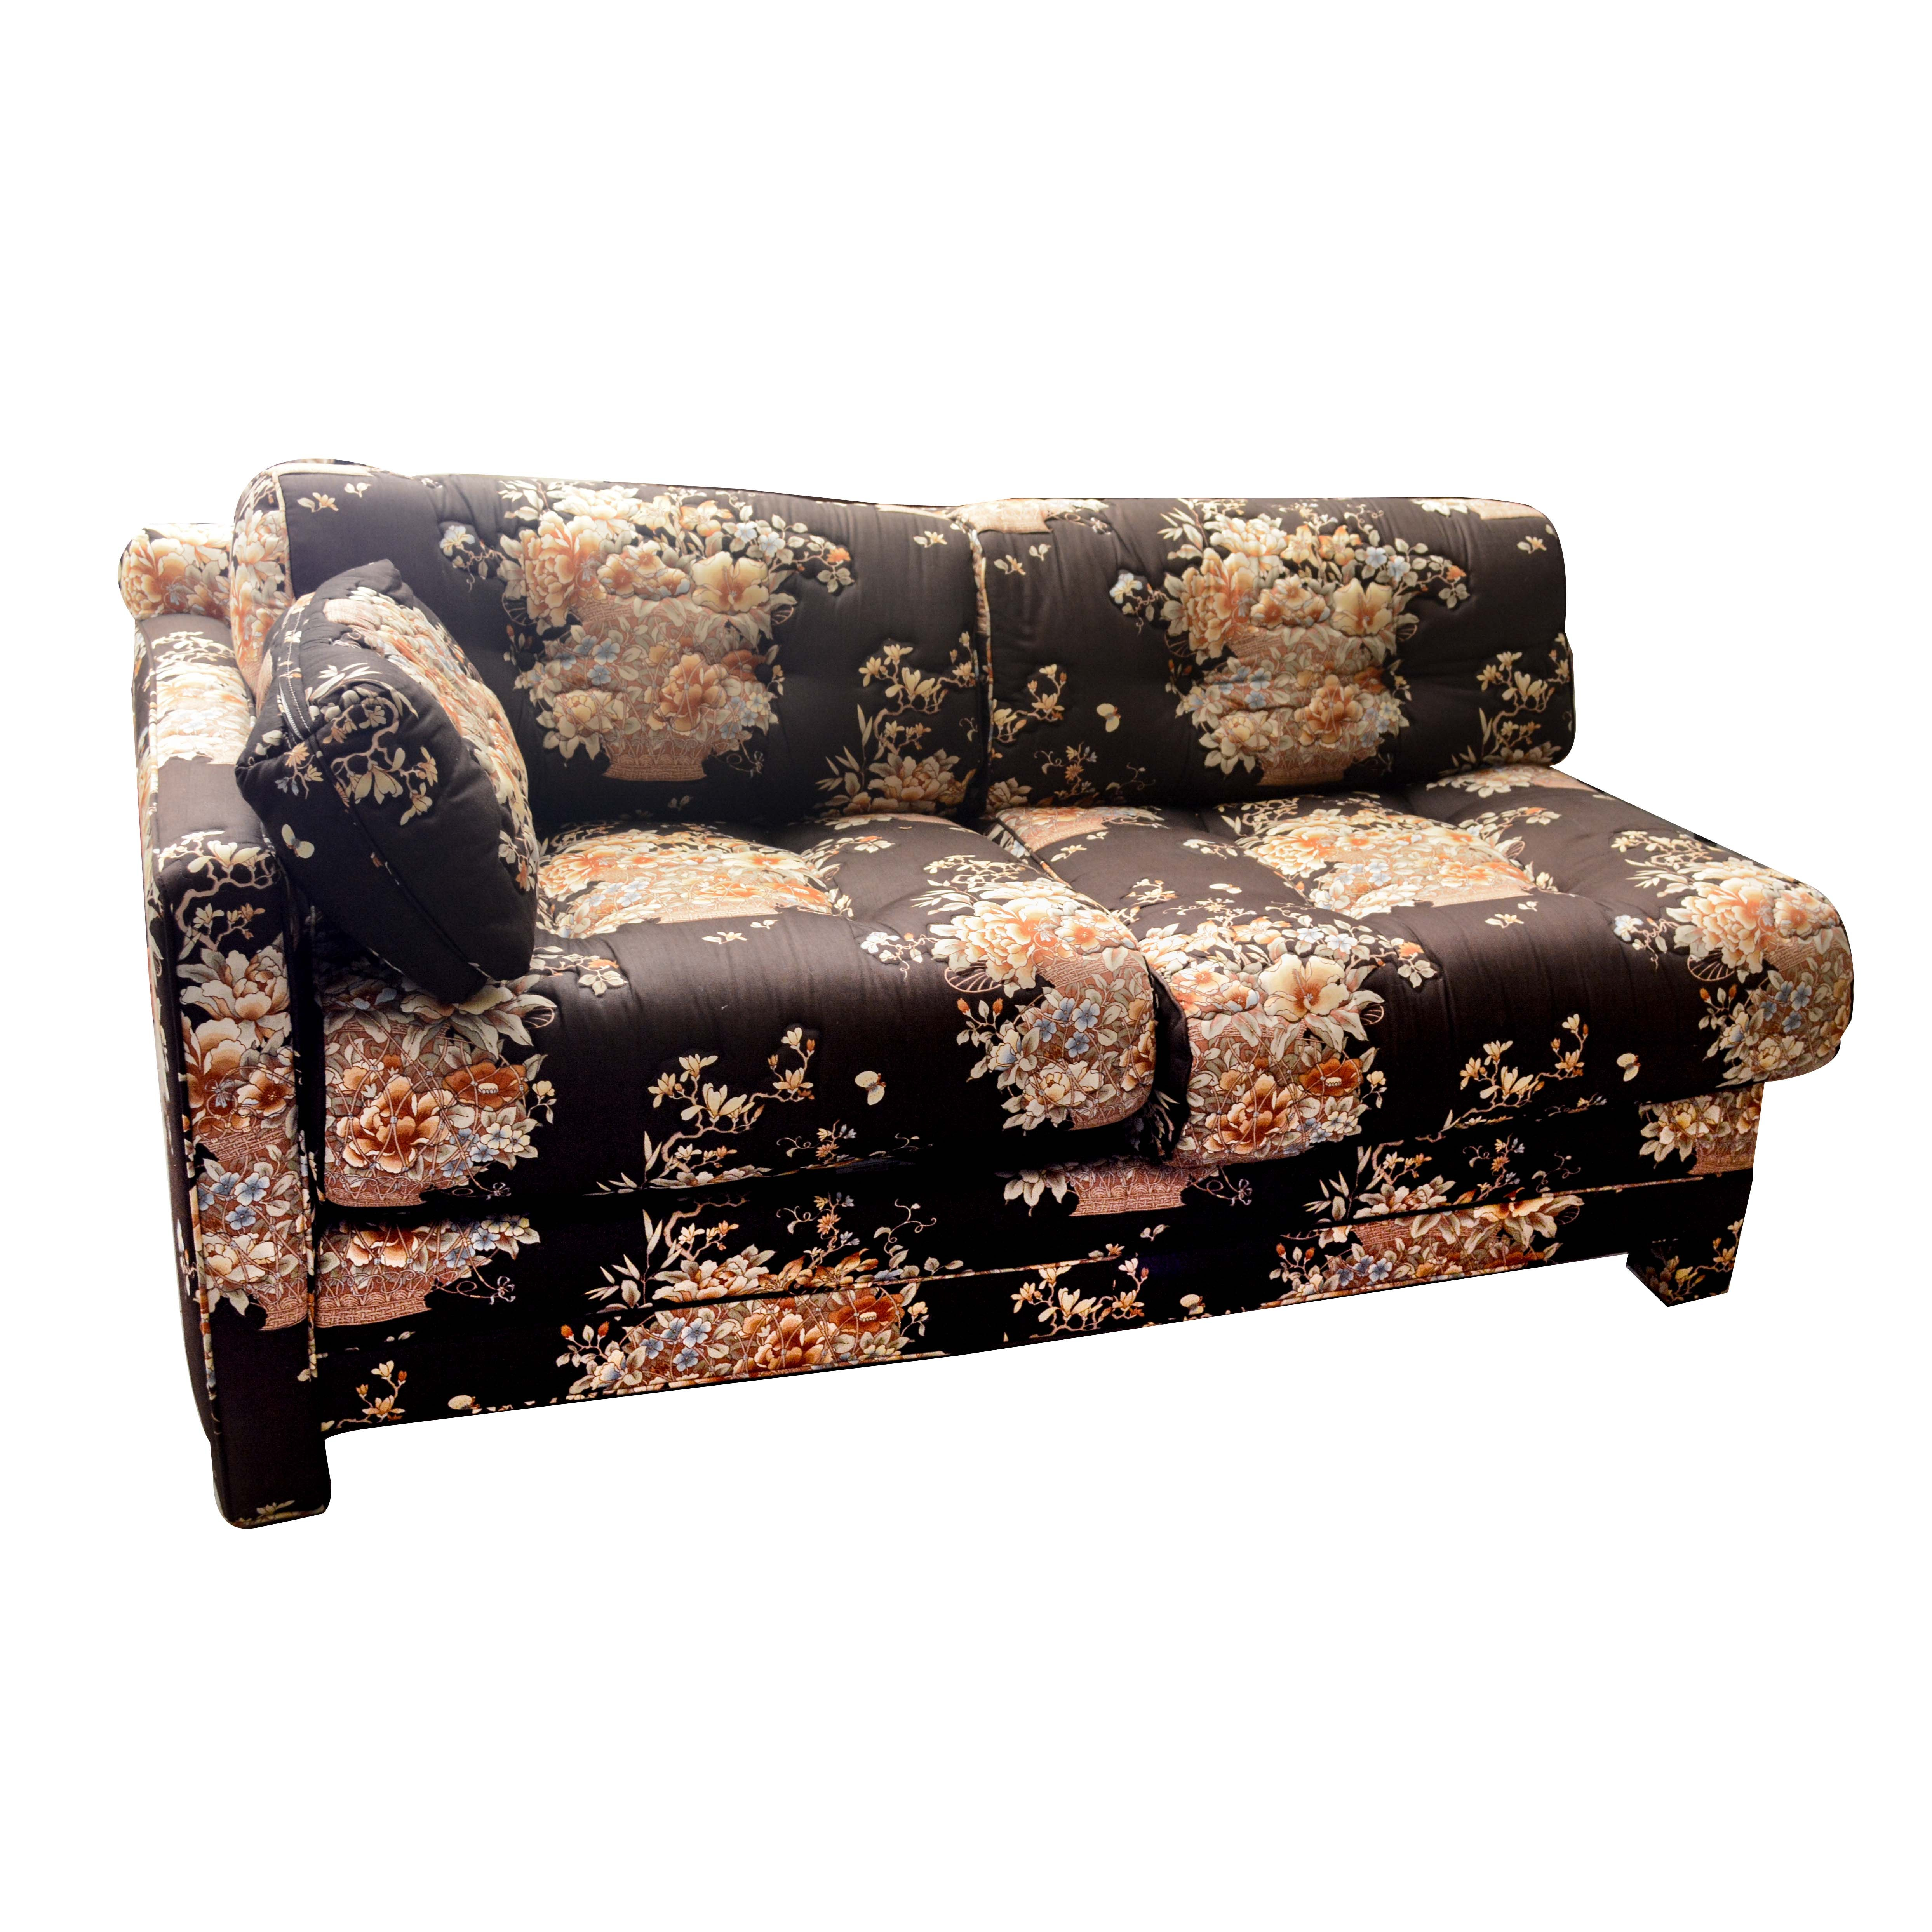 Upholstered Loveseat Sectional by Gilliam Furniture